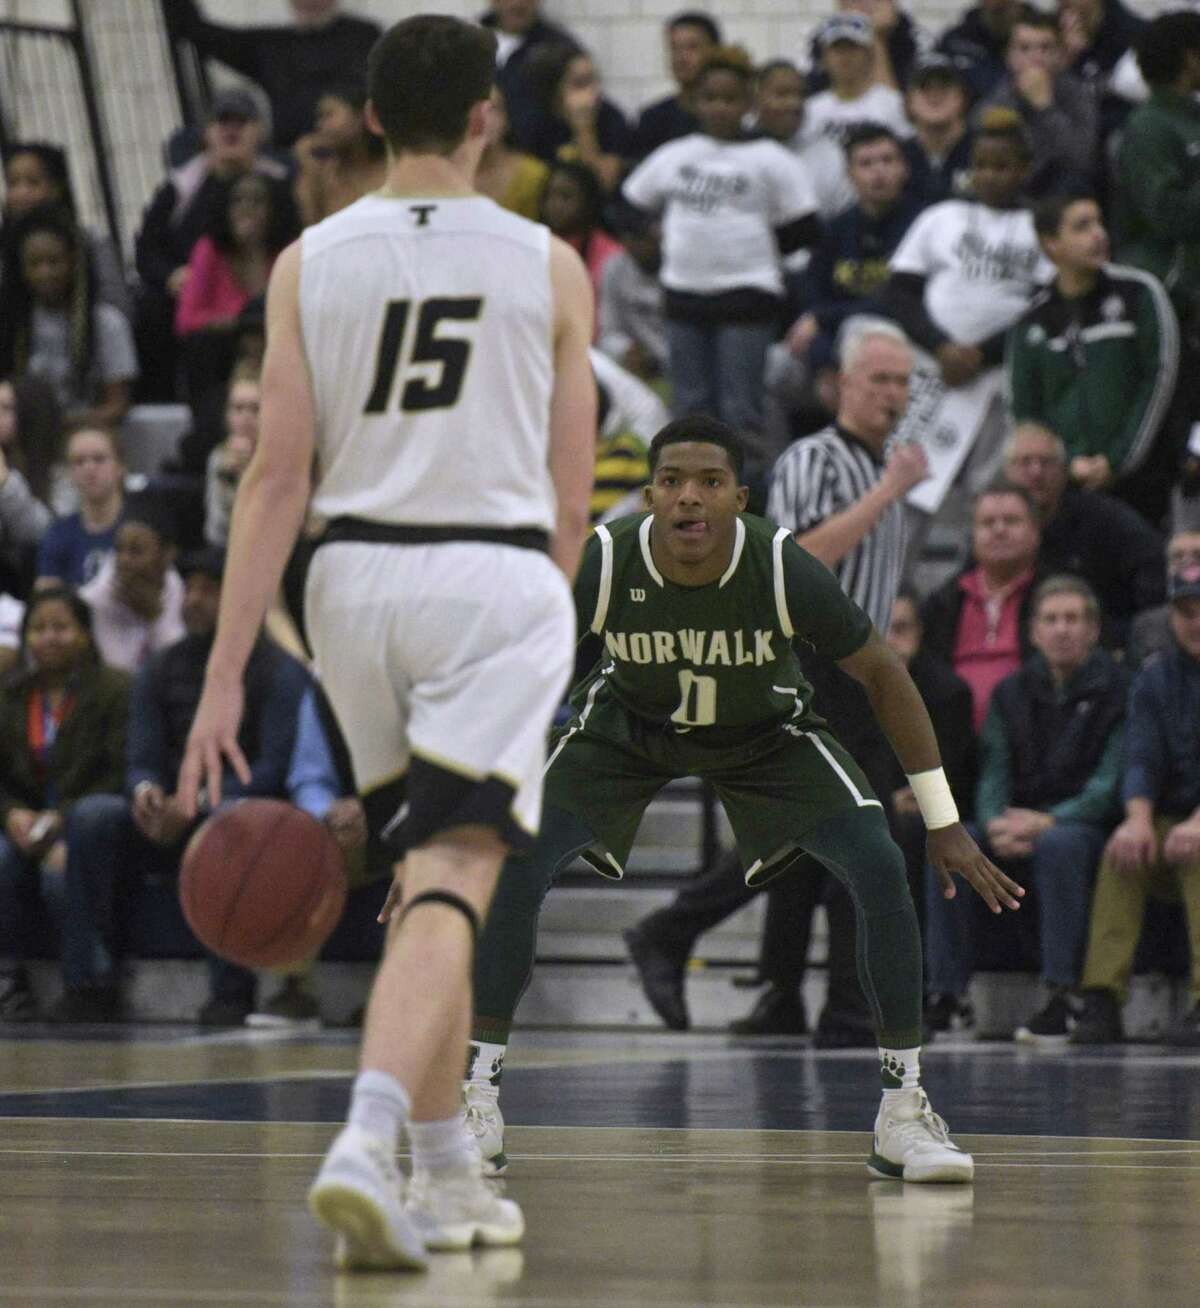 Norwalk's Tyrique Langley (0) defends Trumbull's Chris Brown (15) as he brings the ball up-court in the boys FCIAC basketball semifinal game between Norwalk and Trumbull high schools, at Wilton High School, in Wilton, Conn. Tuesday, February 27, 2018.